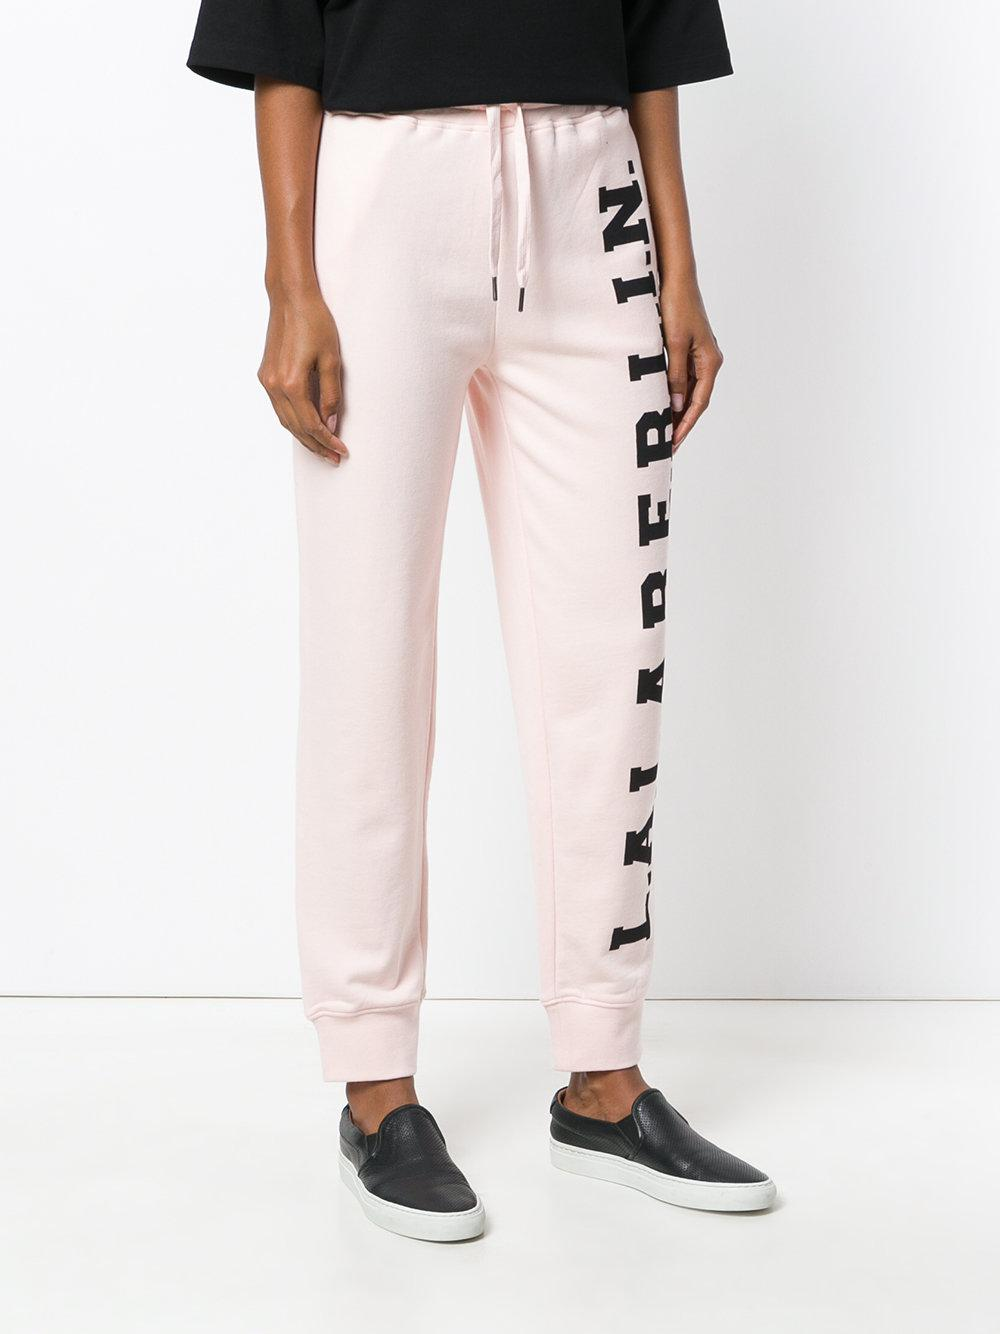 Outlet Wide Range Of Clearance View Fiorucci logo print track trousers Cheap Reliable Cheap Sale Pay With Visa f7jYQ